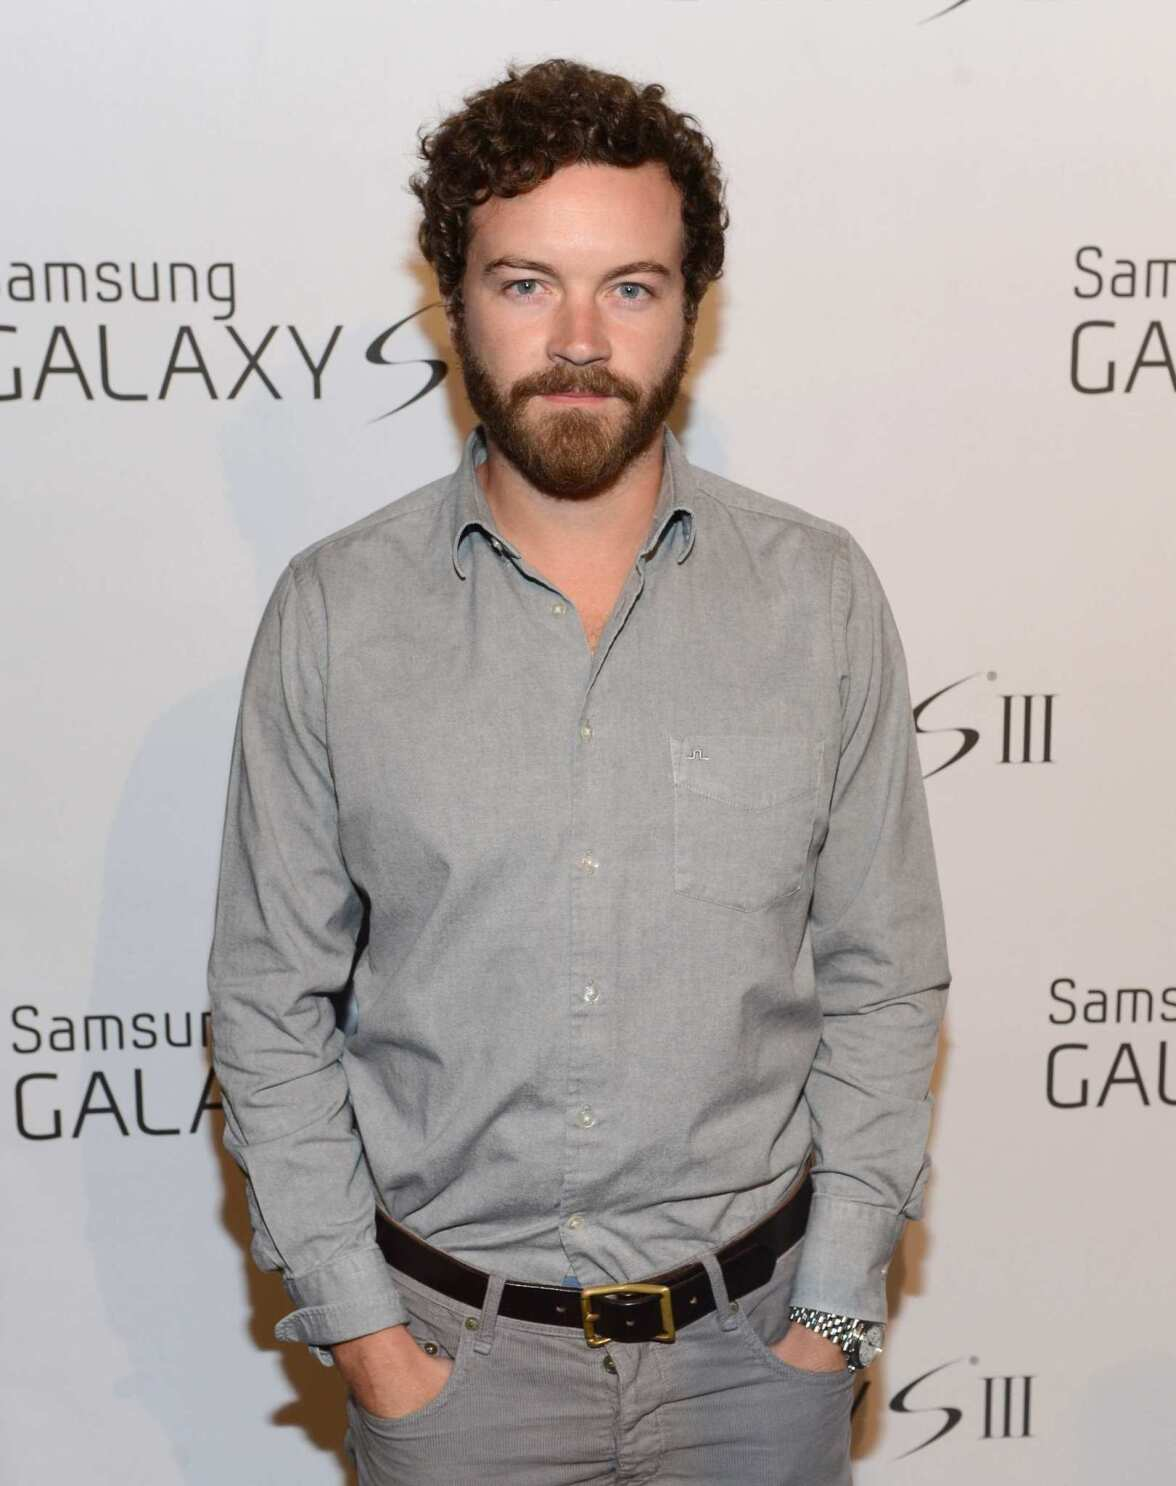 Danny Masterson vows to 'beat' exes in court in Scientology lawsuit